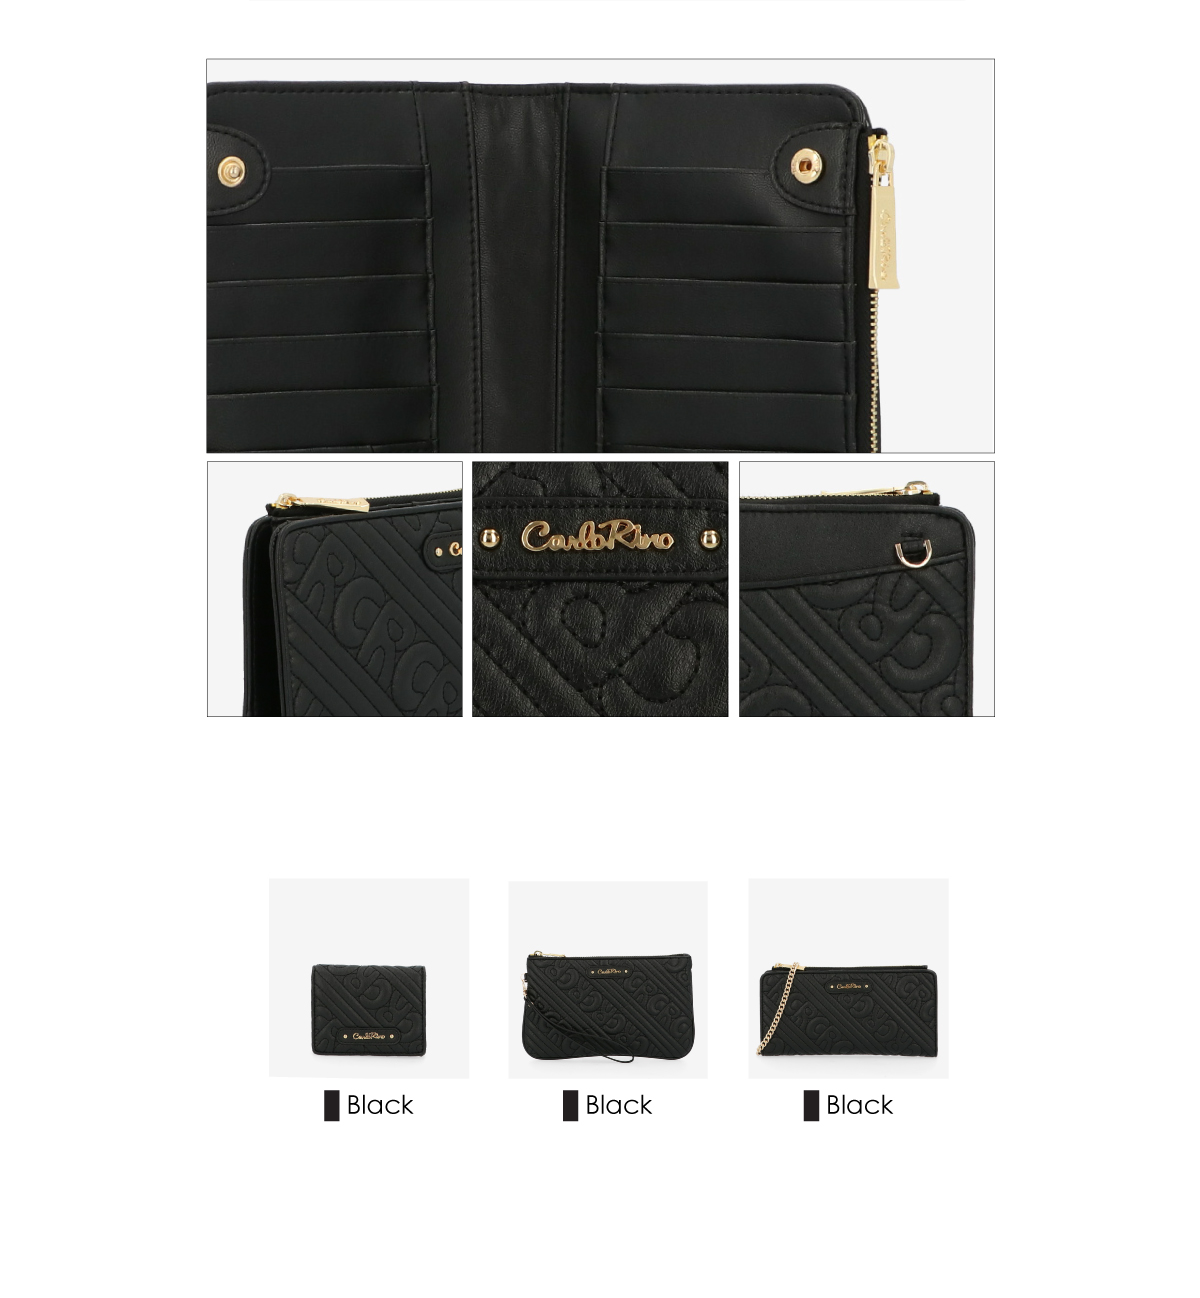 0305135J 703 3 1 - Dangerously Black Crossbody Wallet